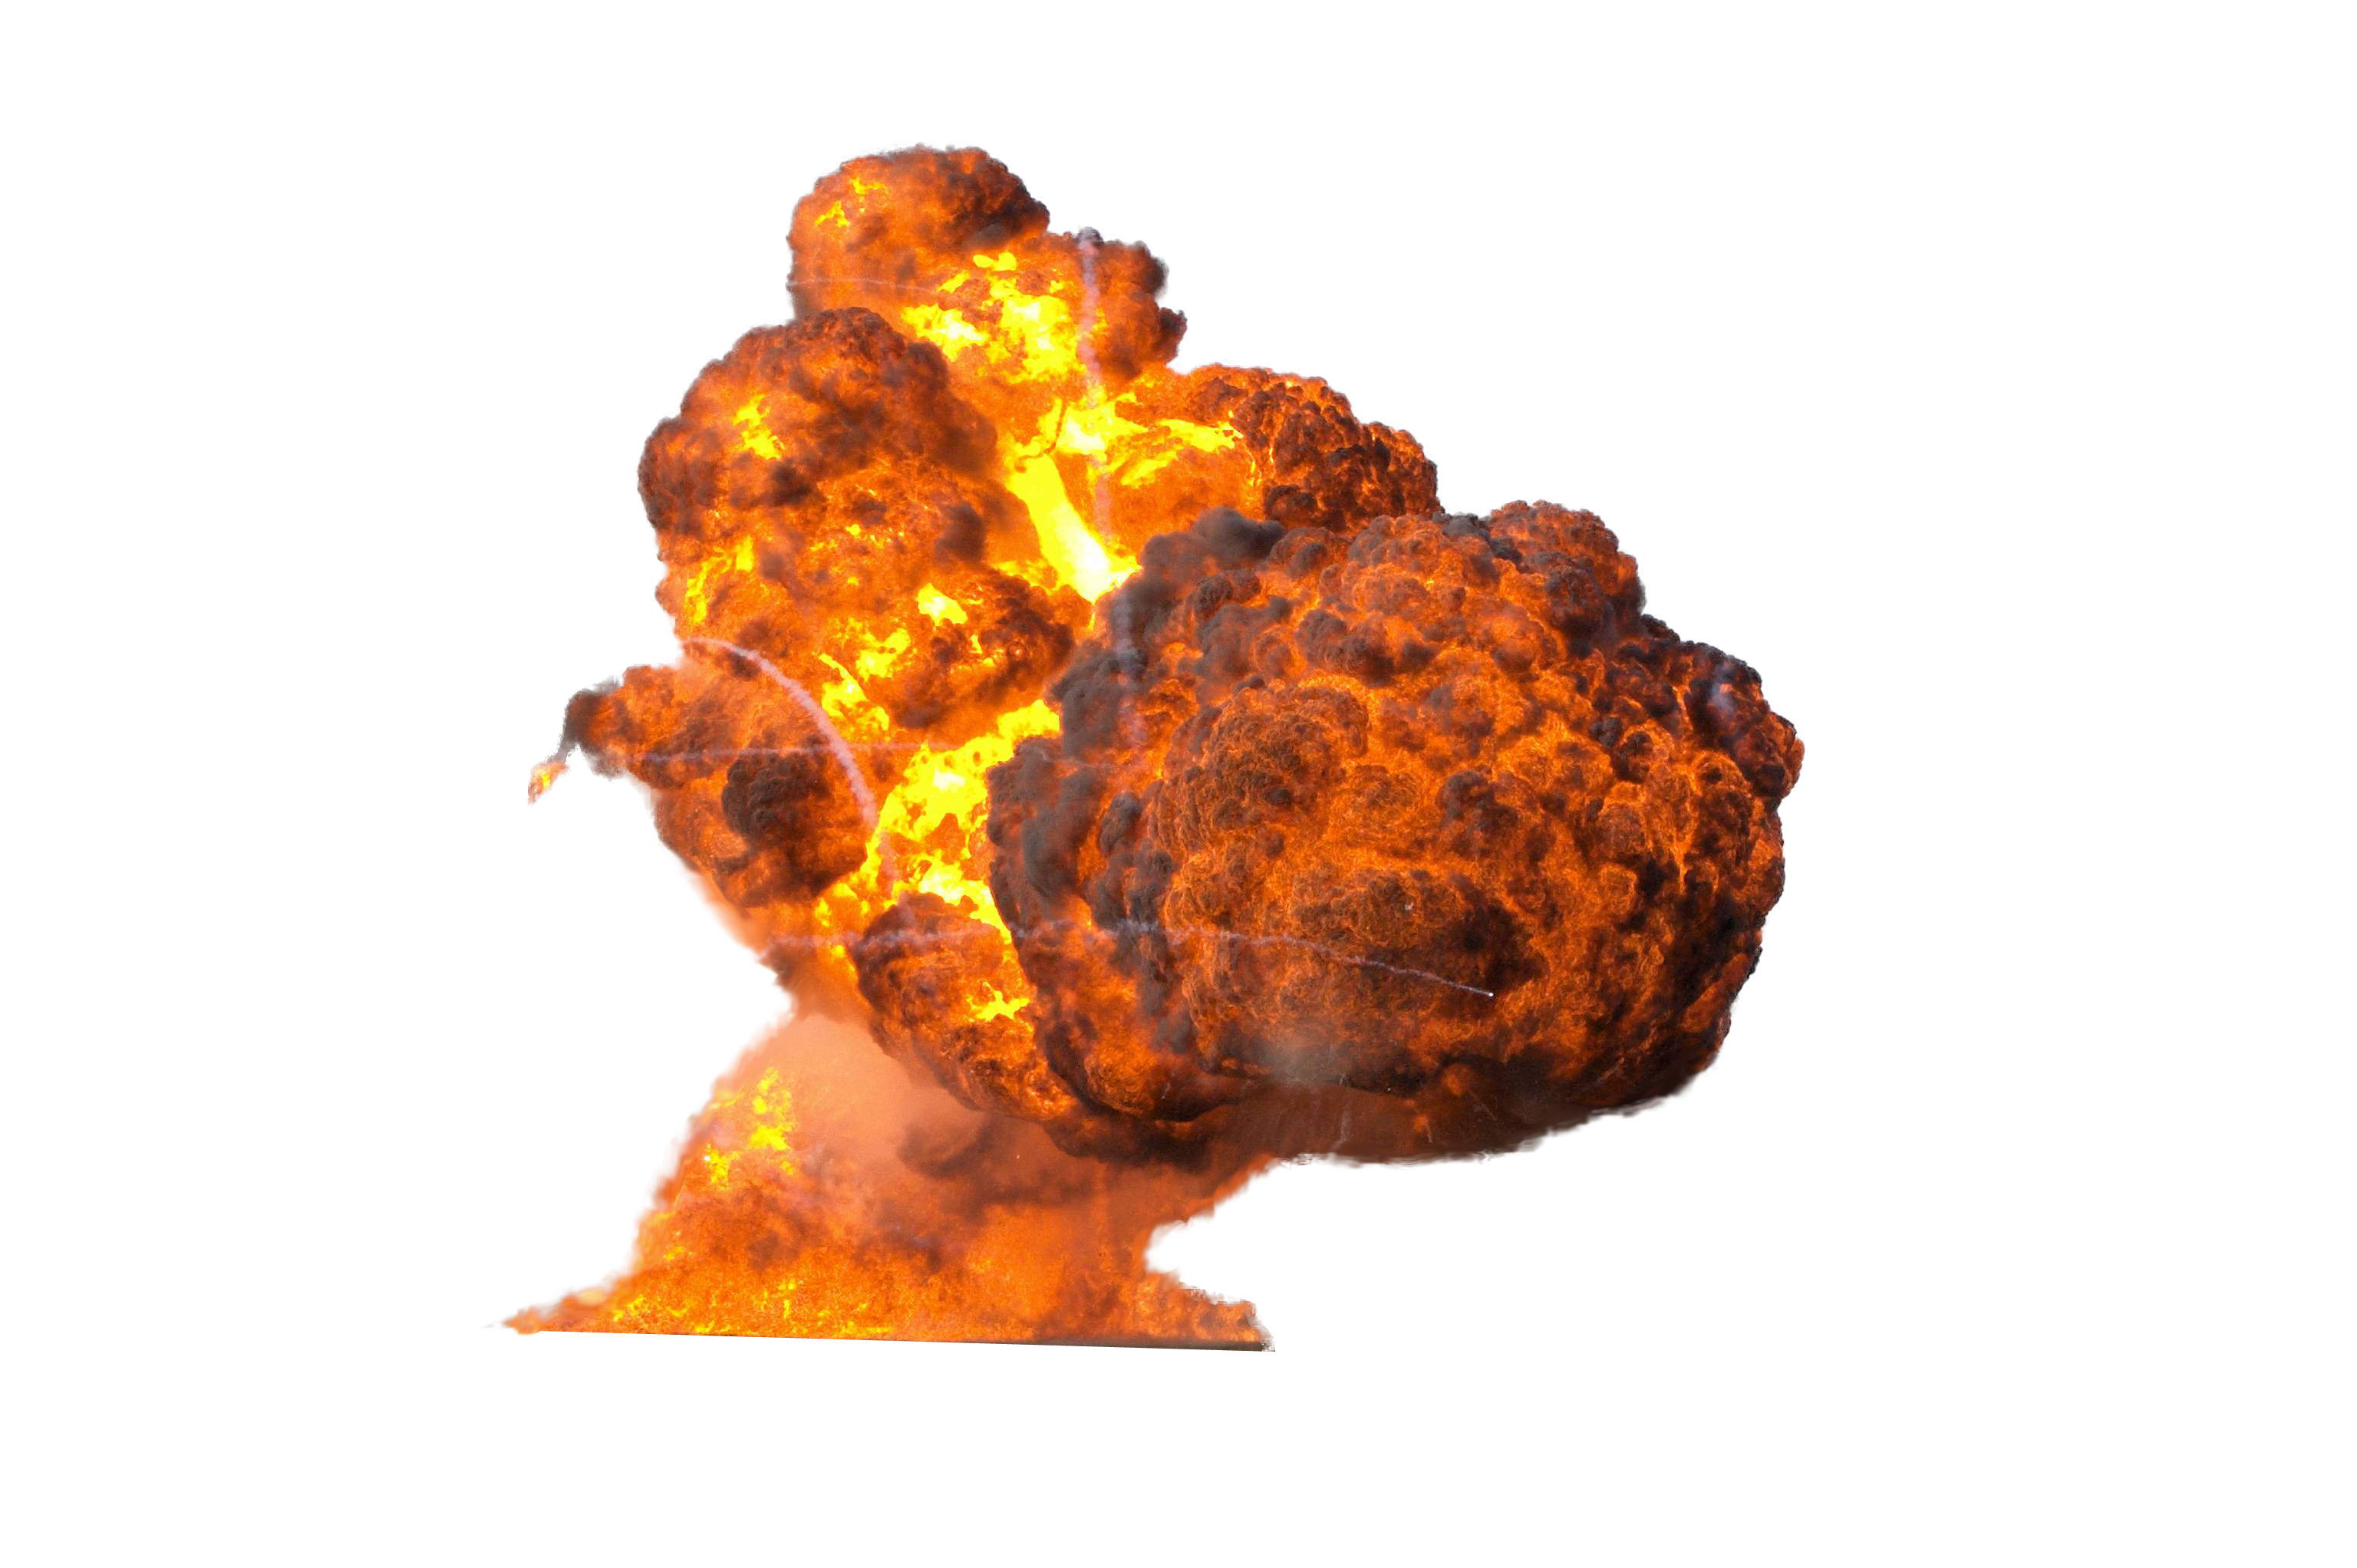 Explosion transparent pictures free. Blast png graphic download